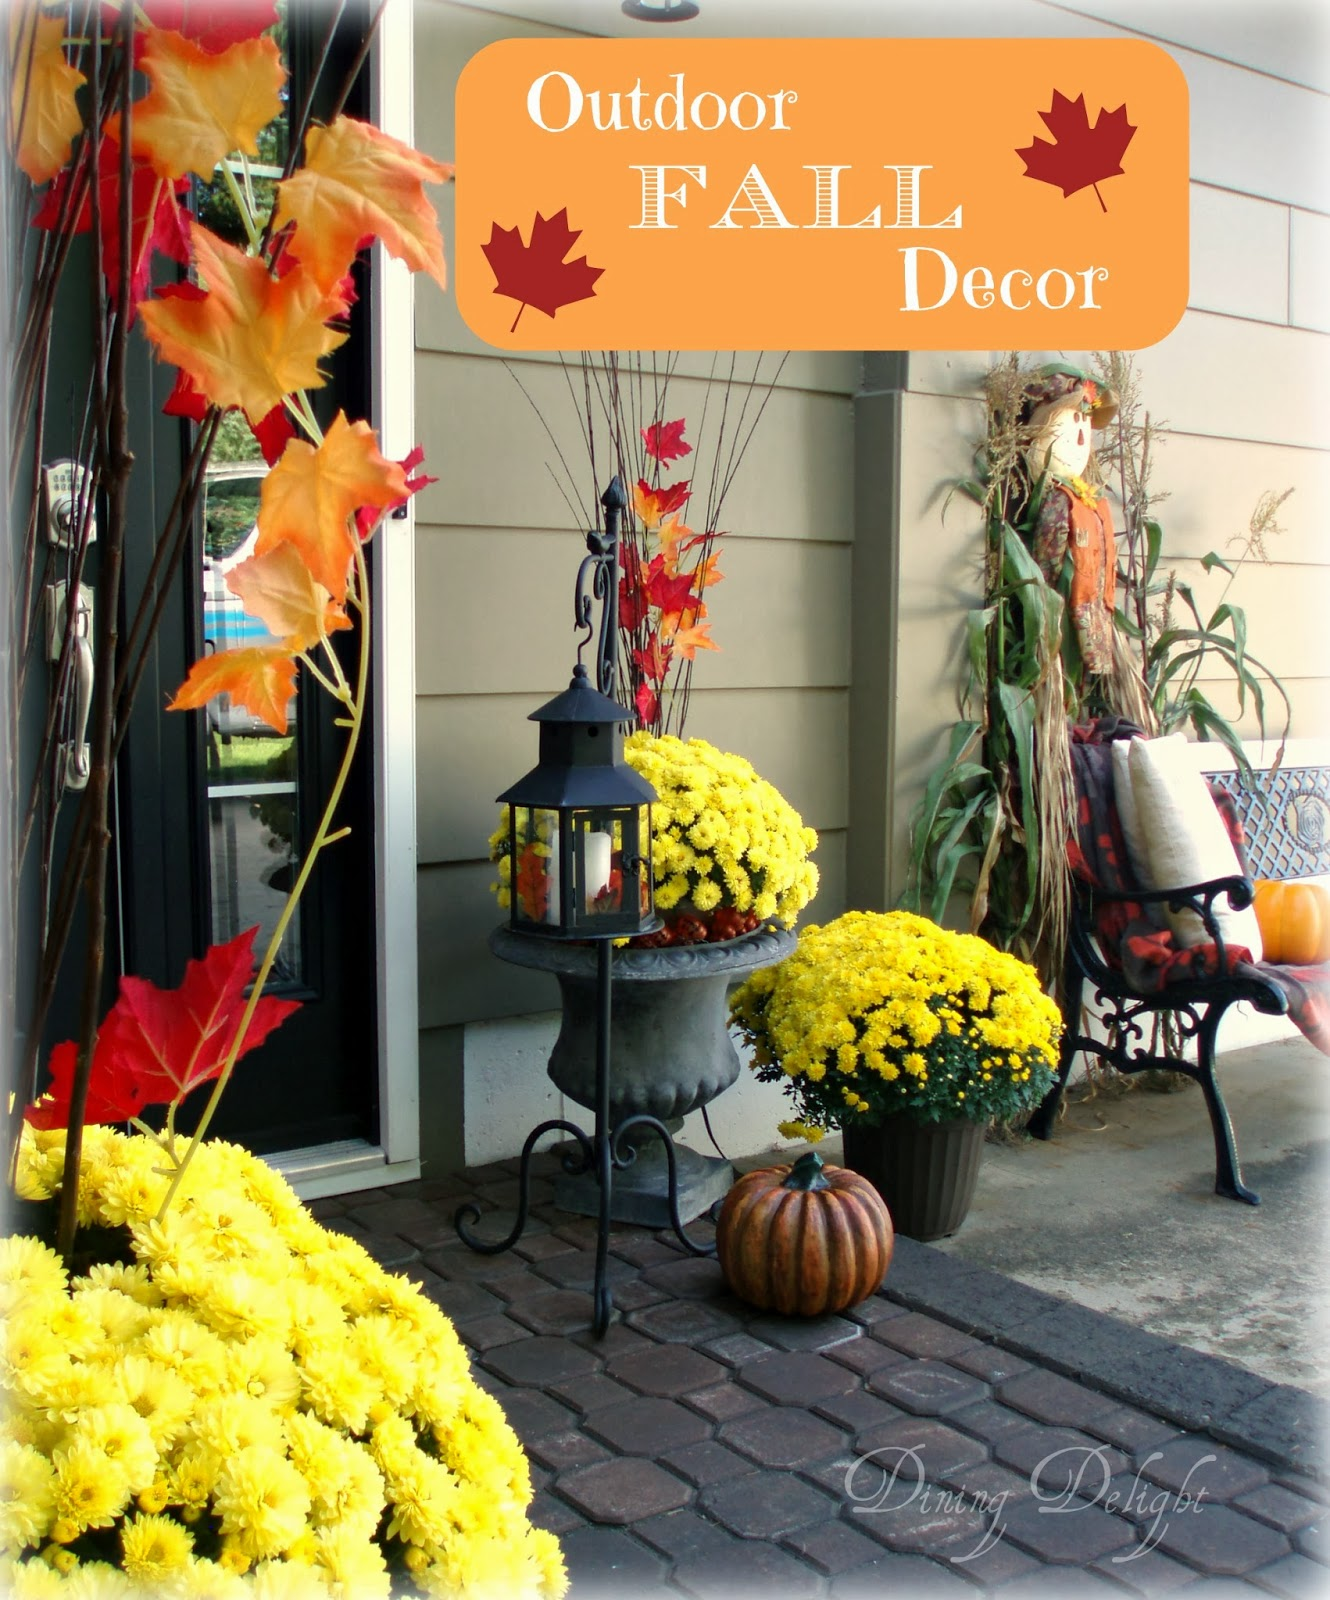 Dining delight outdoor fall decor for Pictures of fall decorations for outdoors